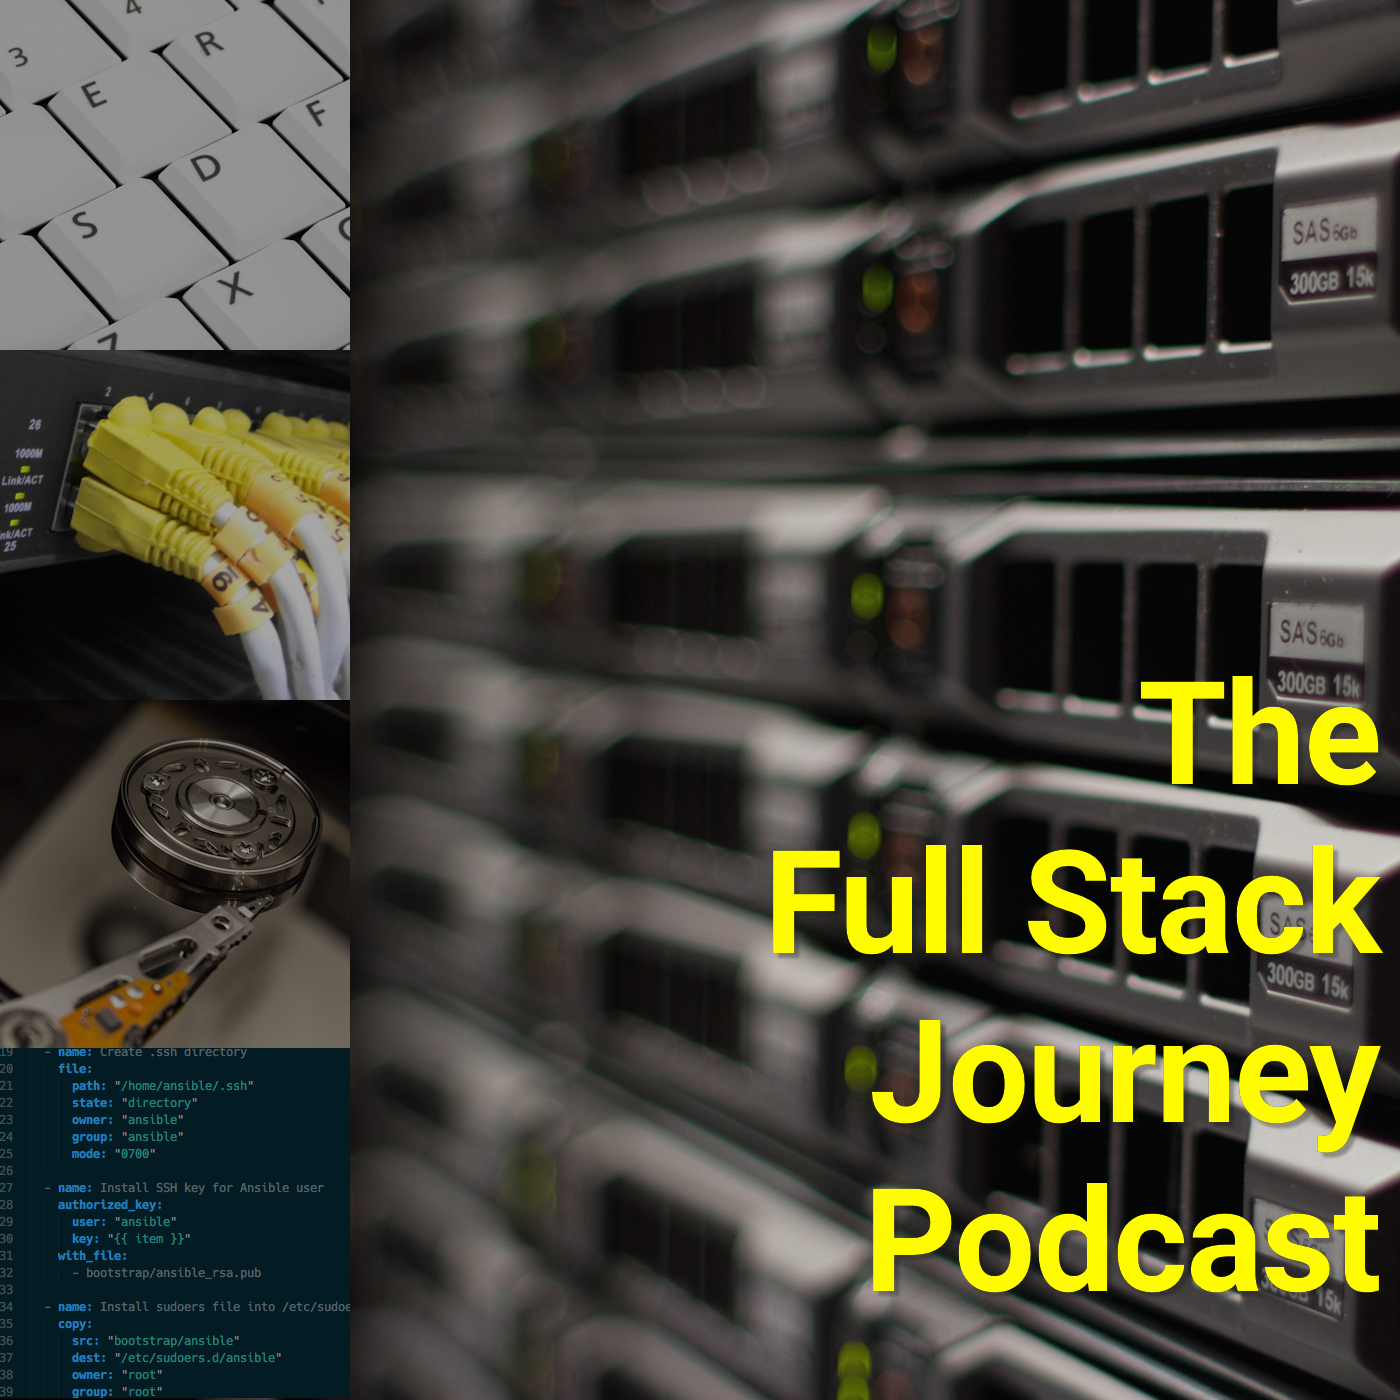 The Full Stack Journey